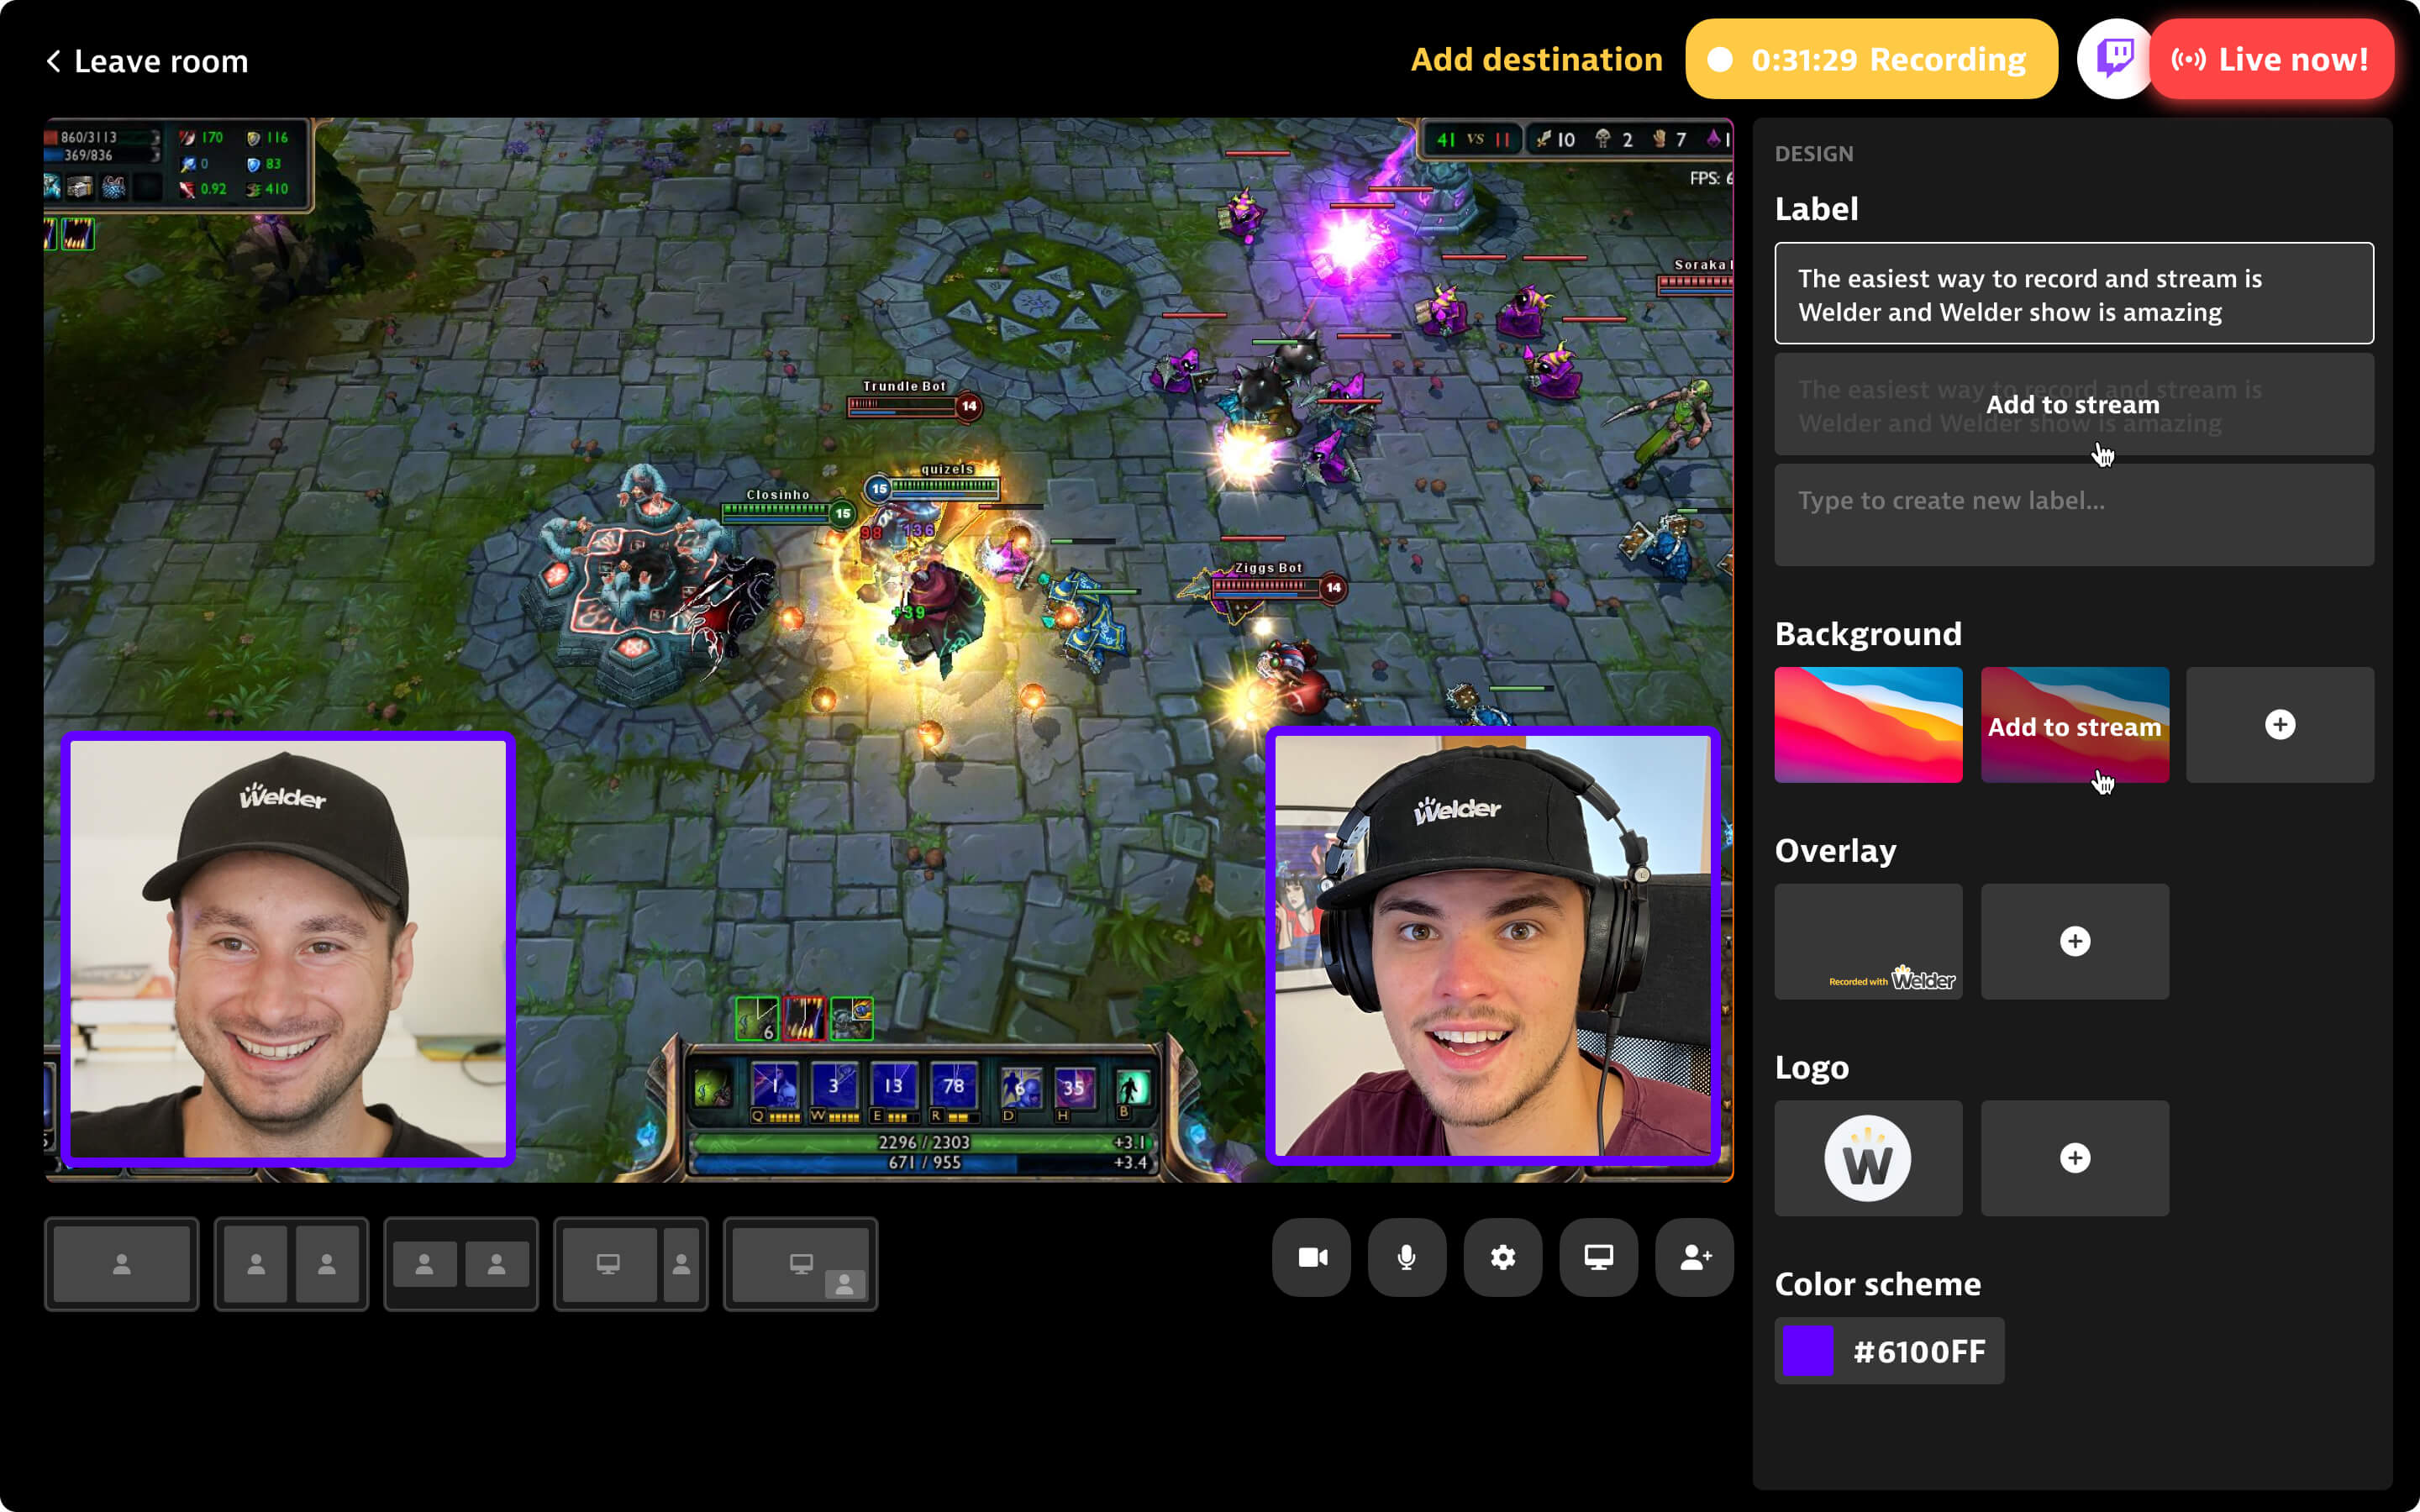 Twitch Live Streaming